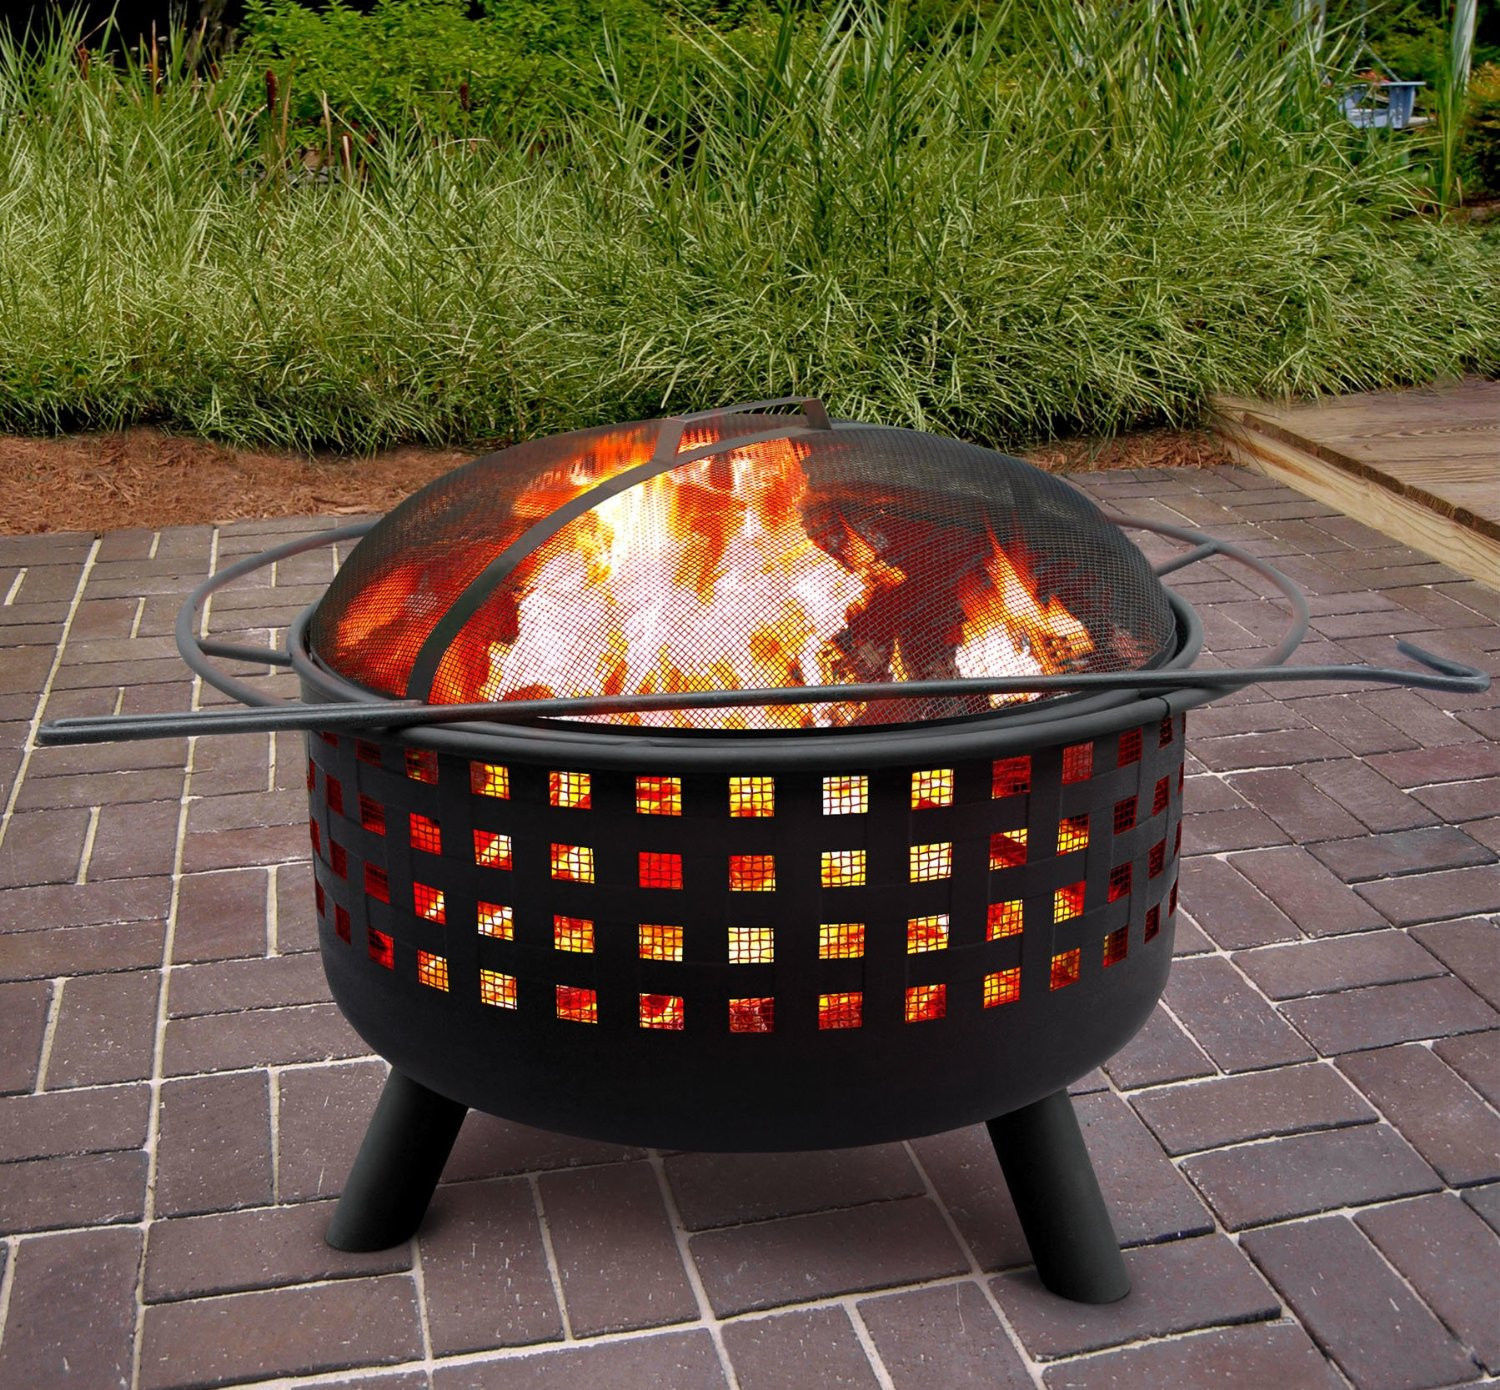 Metal Fire Pit Black Outdoor Patio Backyard Camping Deck Cooking Grill Fireplace Fire Pits